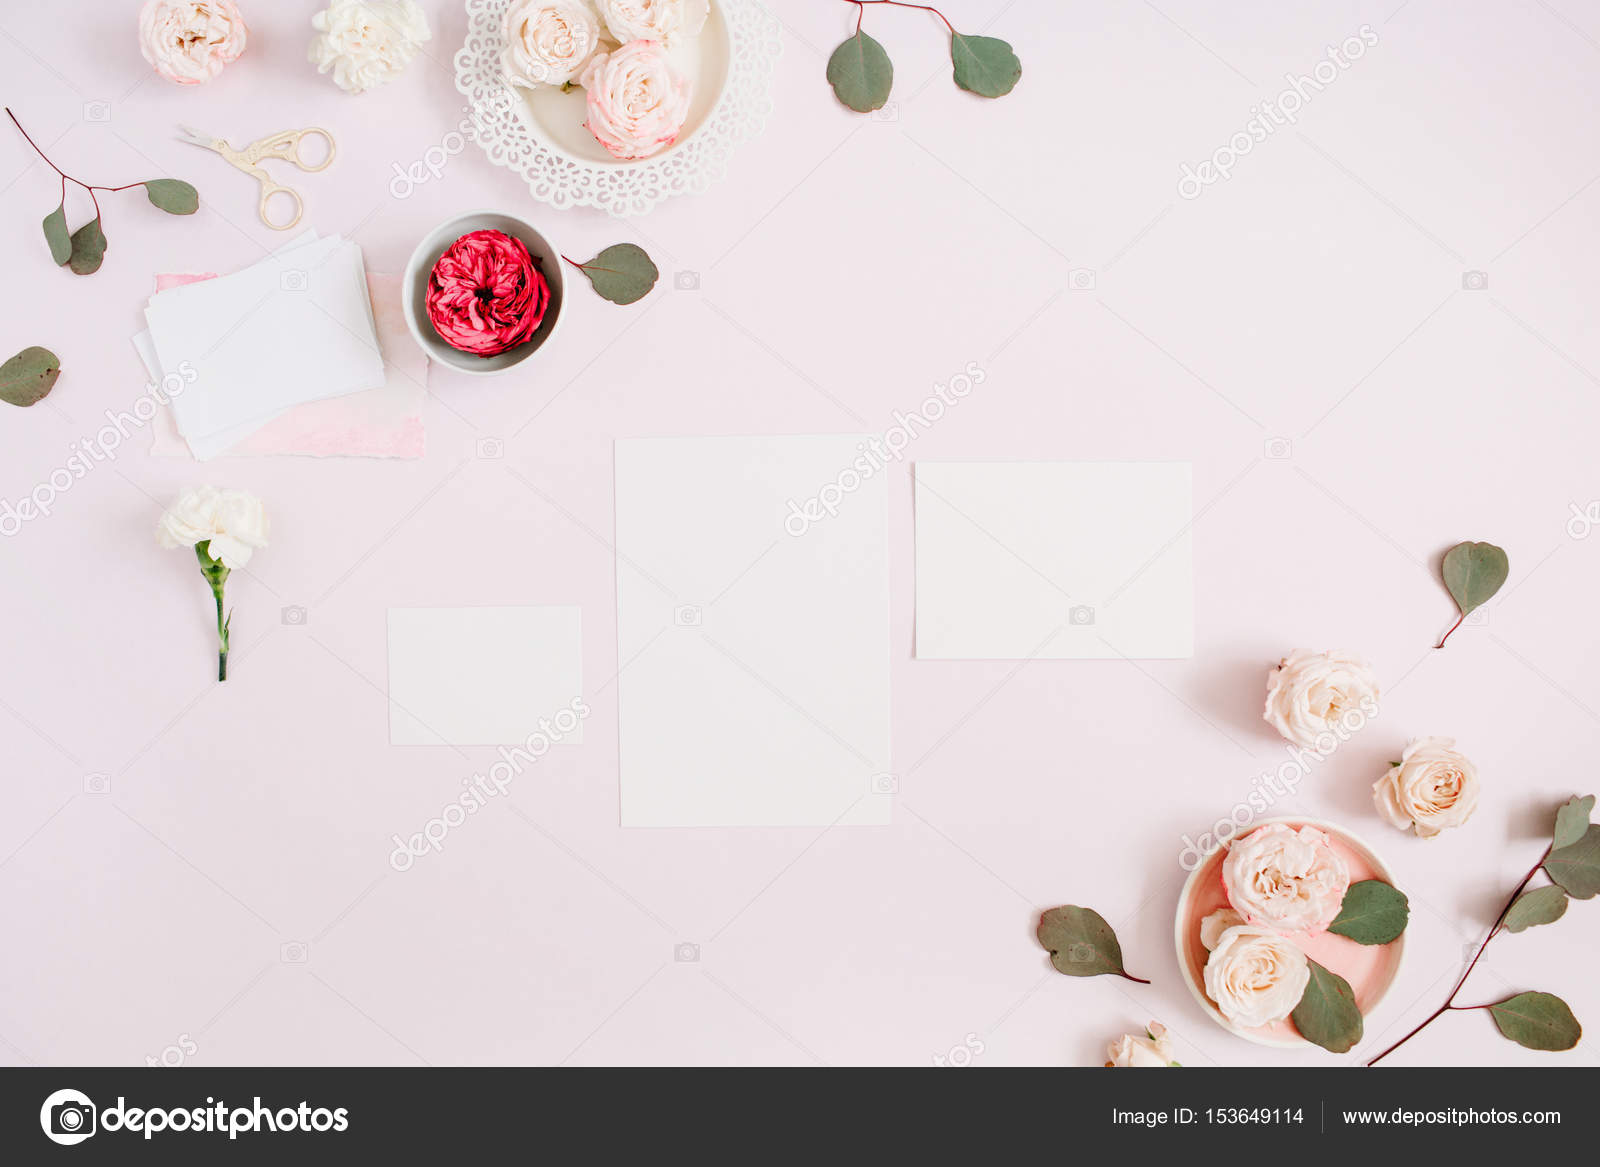 Wedding Invitation Cards Template Stock Photo C Maximleshkovich